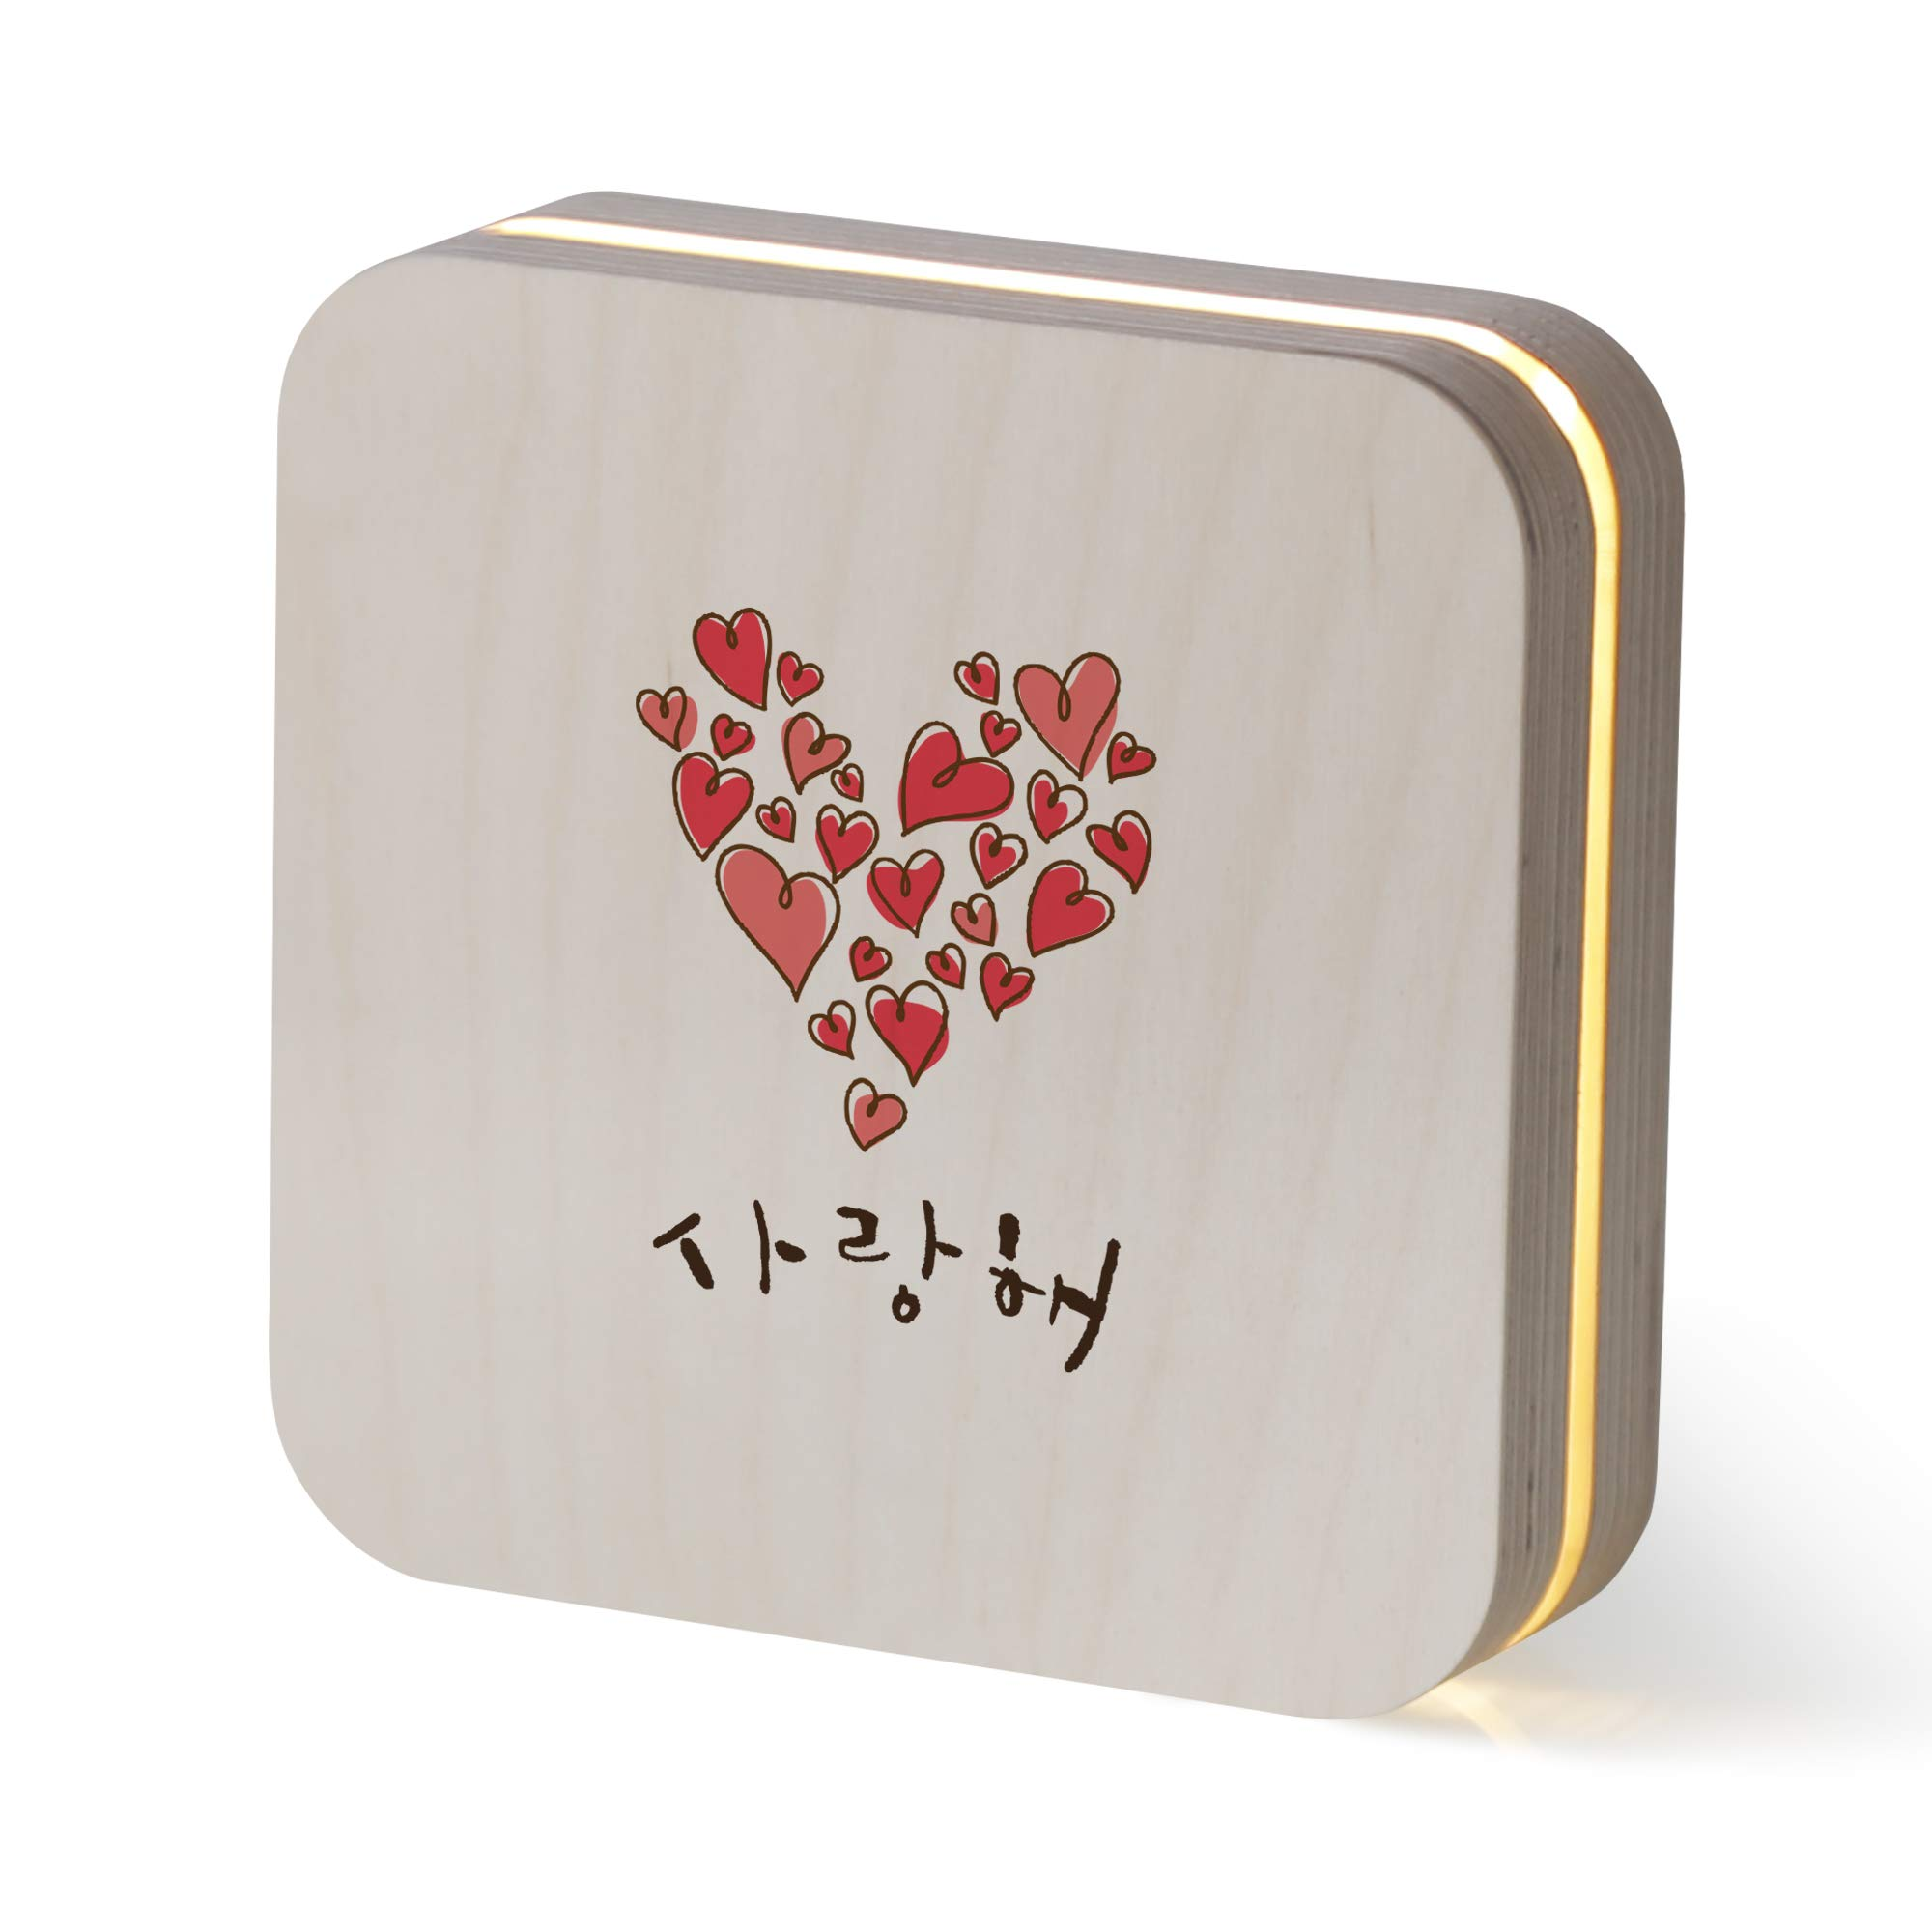 1AM Sandwich LED Table Lamp Design Wooden Calligraphy(Love Big heart)